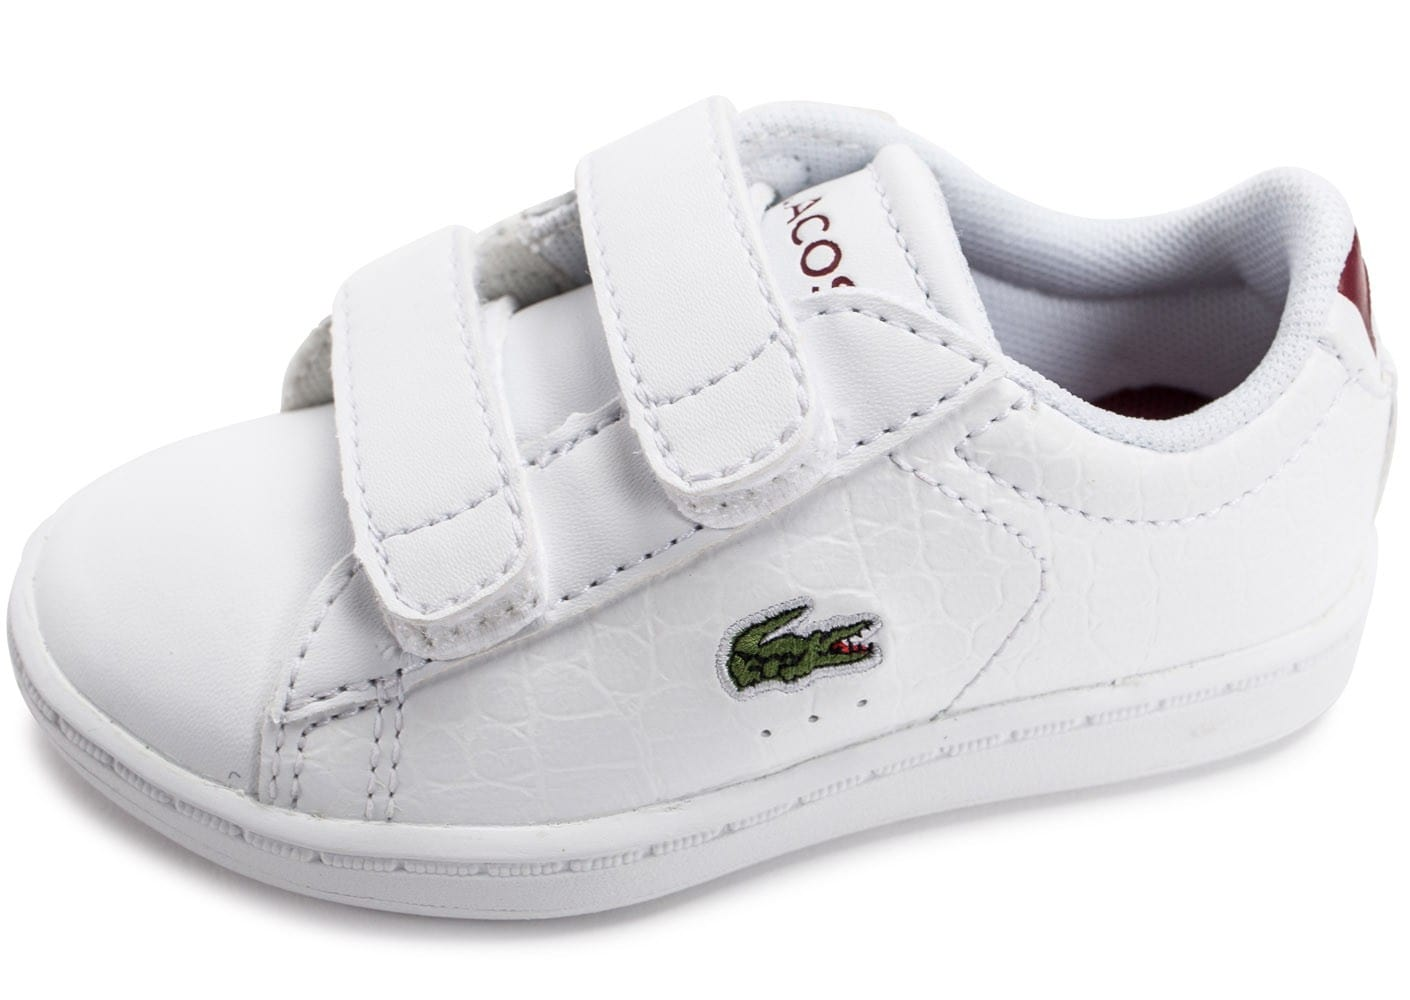 Lacoste carnaby evo b b blanche et rouge chaussures - Lacoste carnaby evo cls baskets en cuir perfore ...